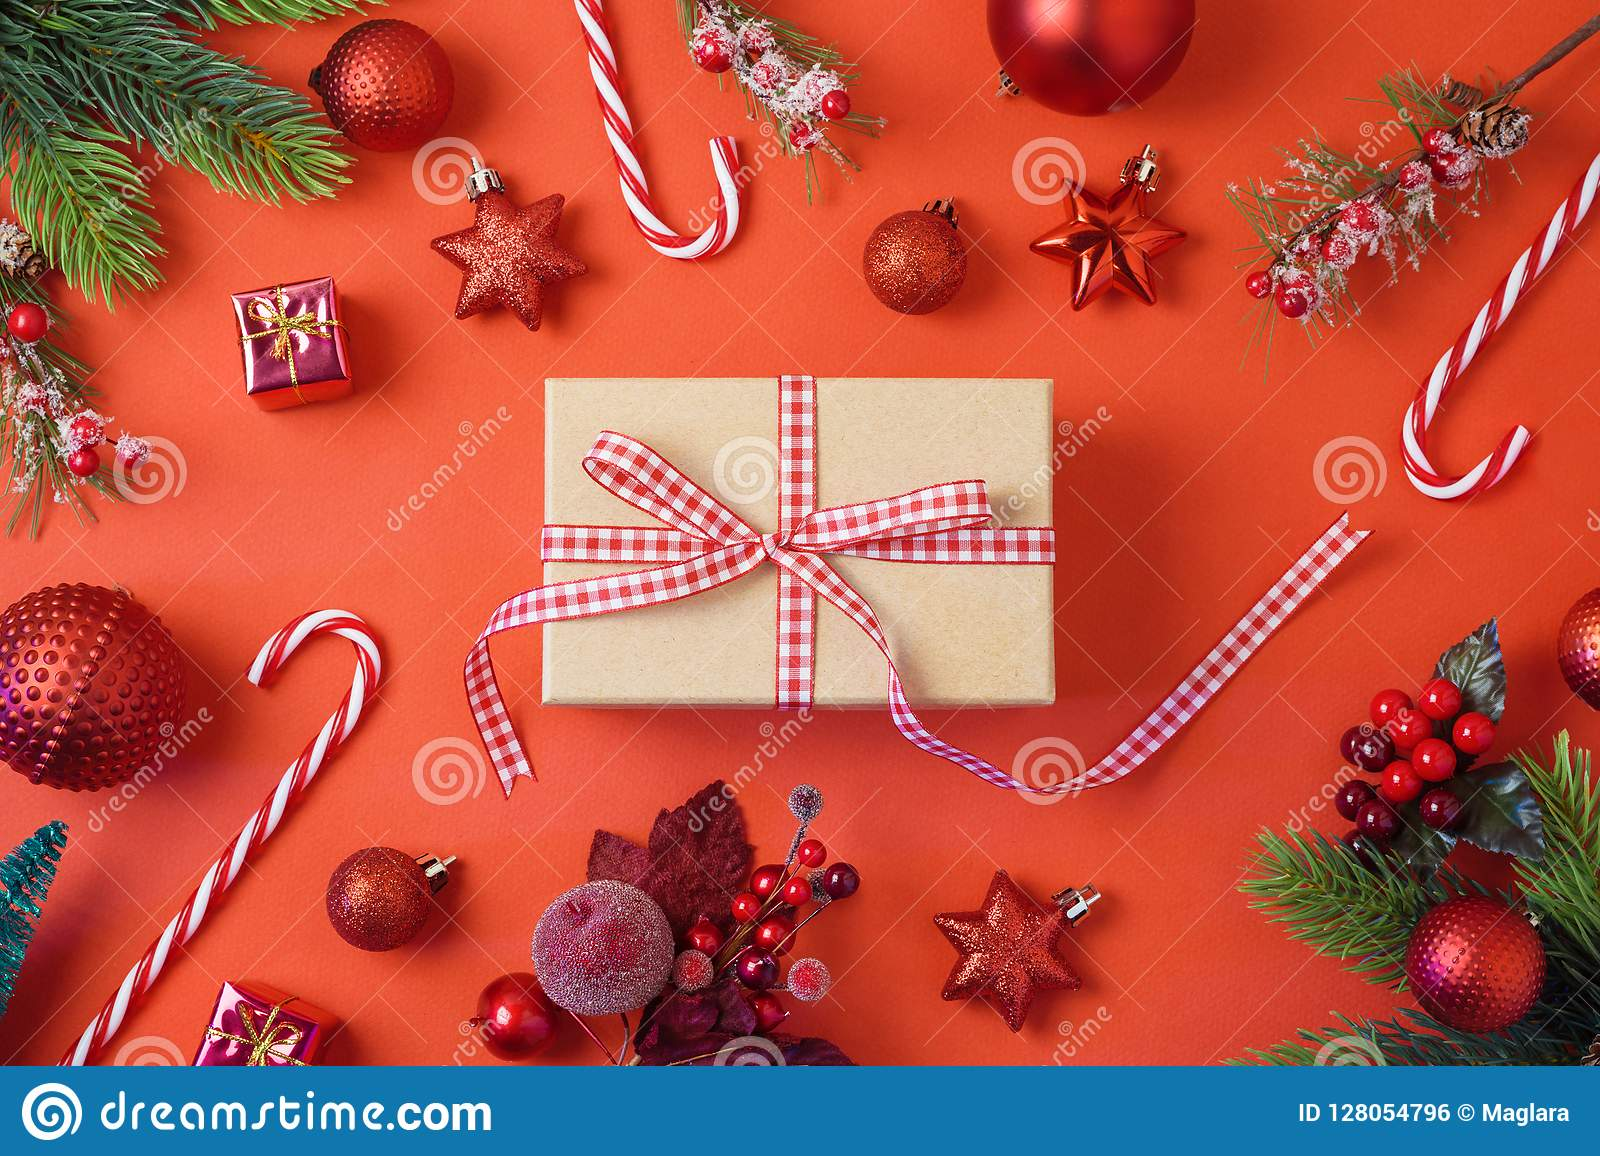 Christmas holiday background with gift box, decorations and orna